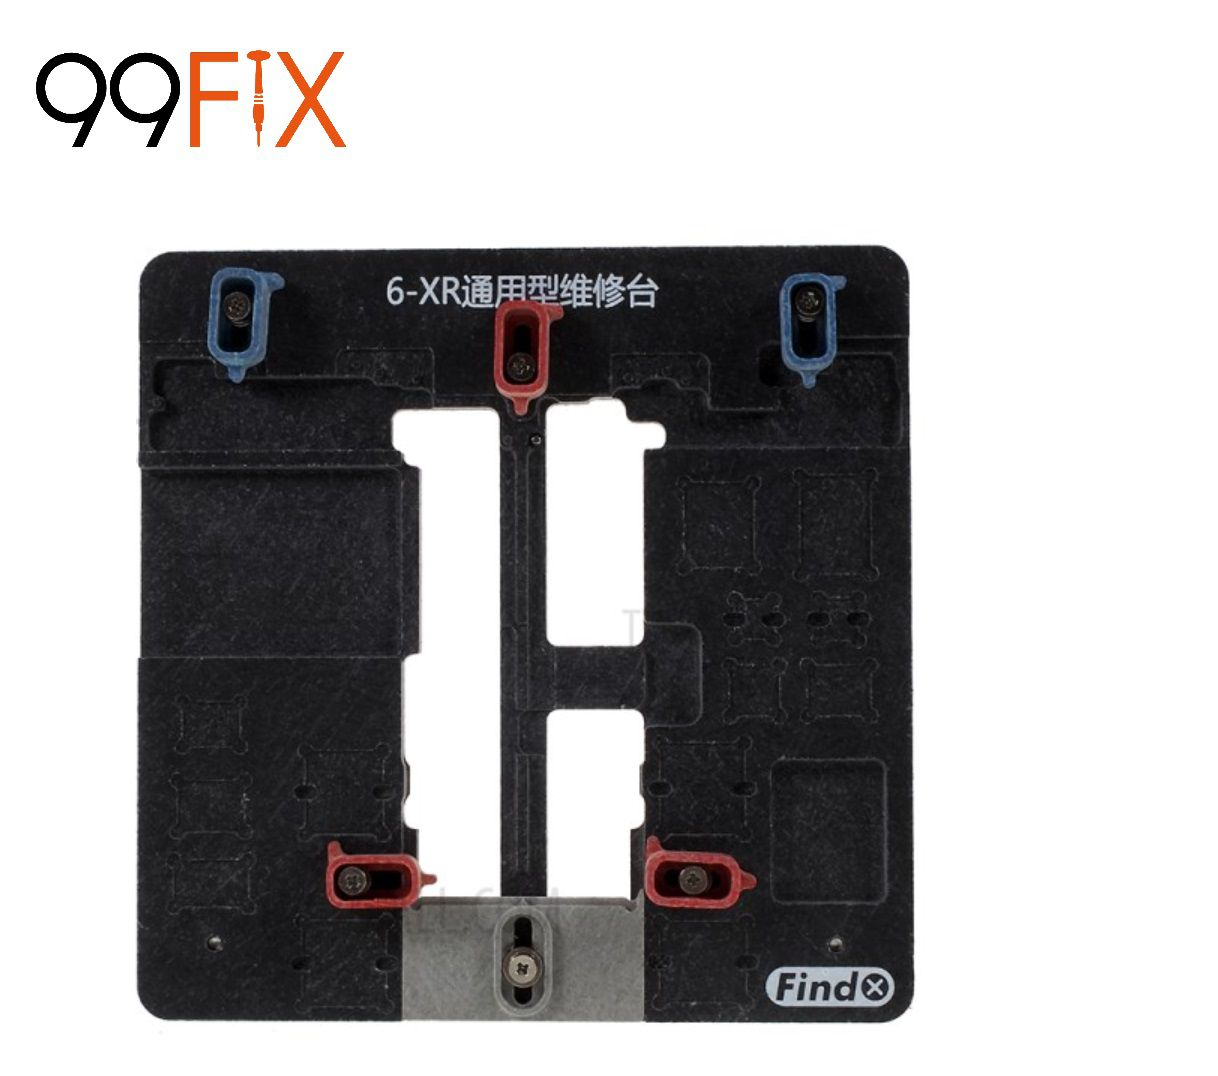 FIND FIX (FIND X) 6-XR SUPORTE PARA PCB PARA IPHONE 6-XR MOTHERBOARD ALTA QUALIDAD